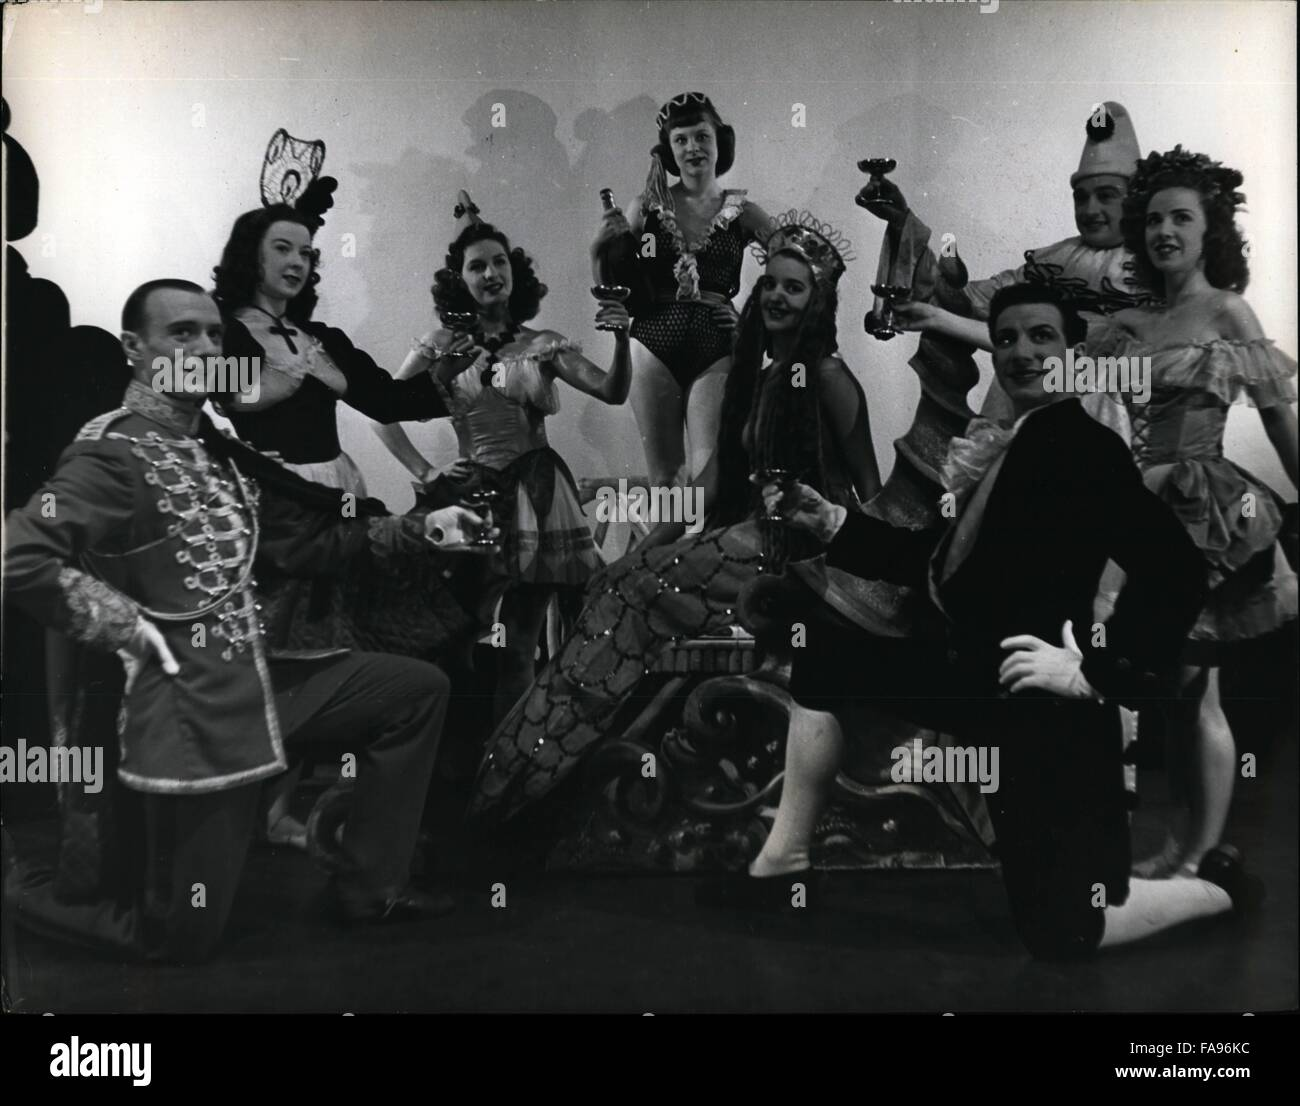 1968 - Ballet at the Windmill: Ballet is a typical feature of every Windmill show. Here is a group from ''Bal - Stock Image